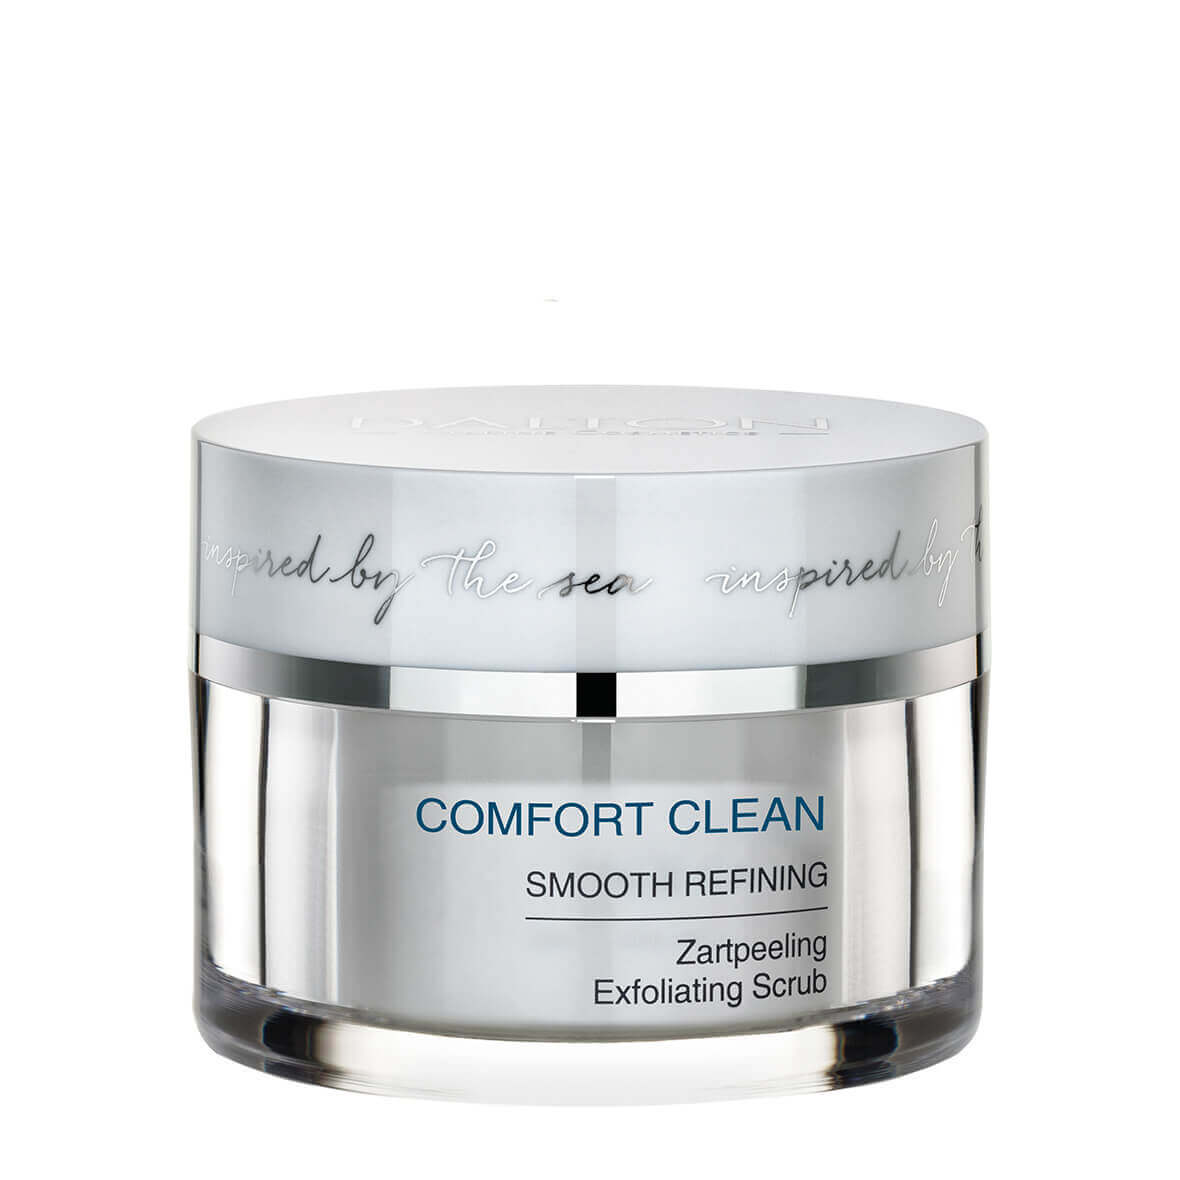 Comfort Clean Exfoliating Scrub 50ml., crema exfolianta, Dalton, Era Cosmetics